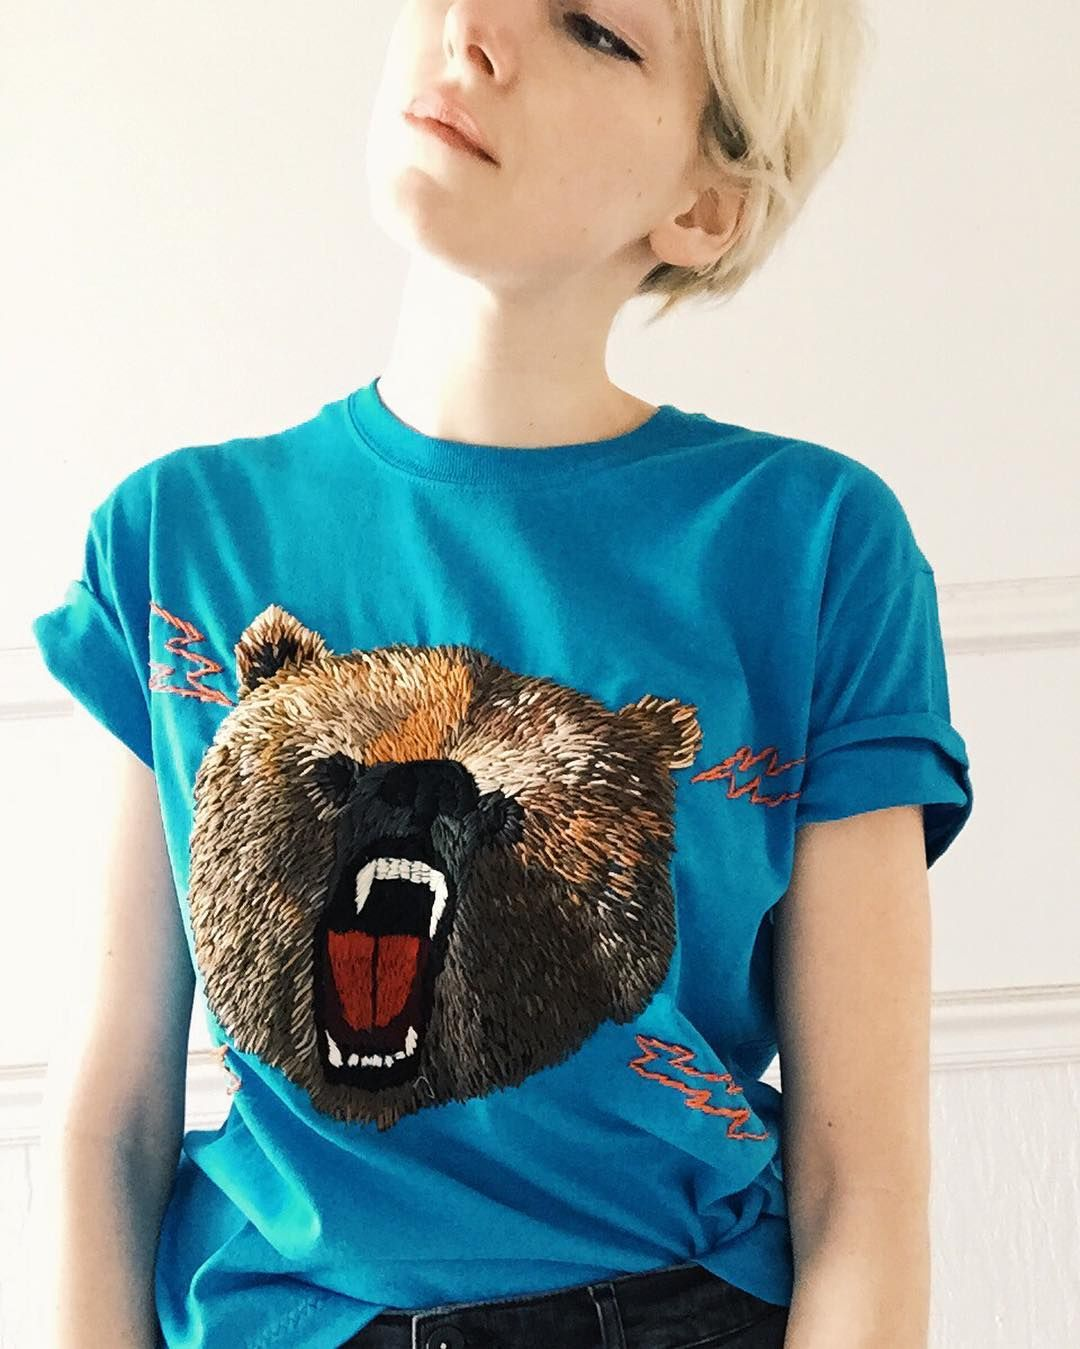 Good mornin wild things grizzly bear embroidered tee freshly awoken good mornin wild things grizzly bear embroidered tee freshly awoken from hibernation ready for publicscrutiny Gallery